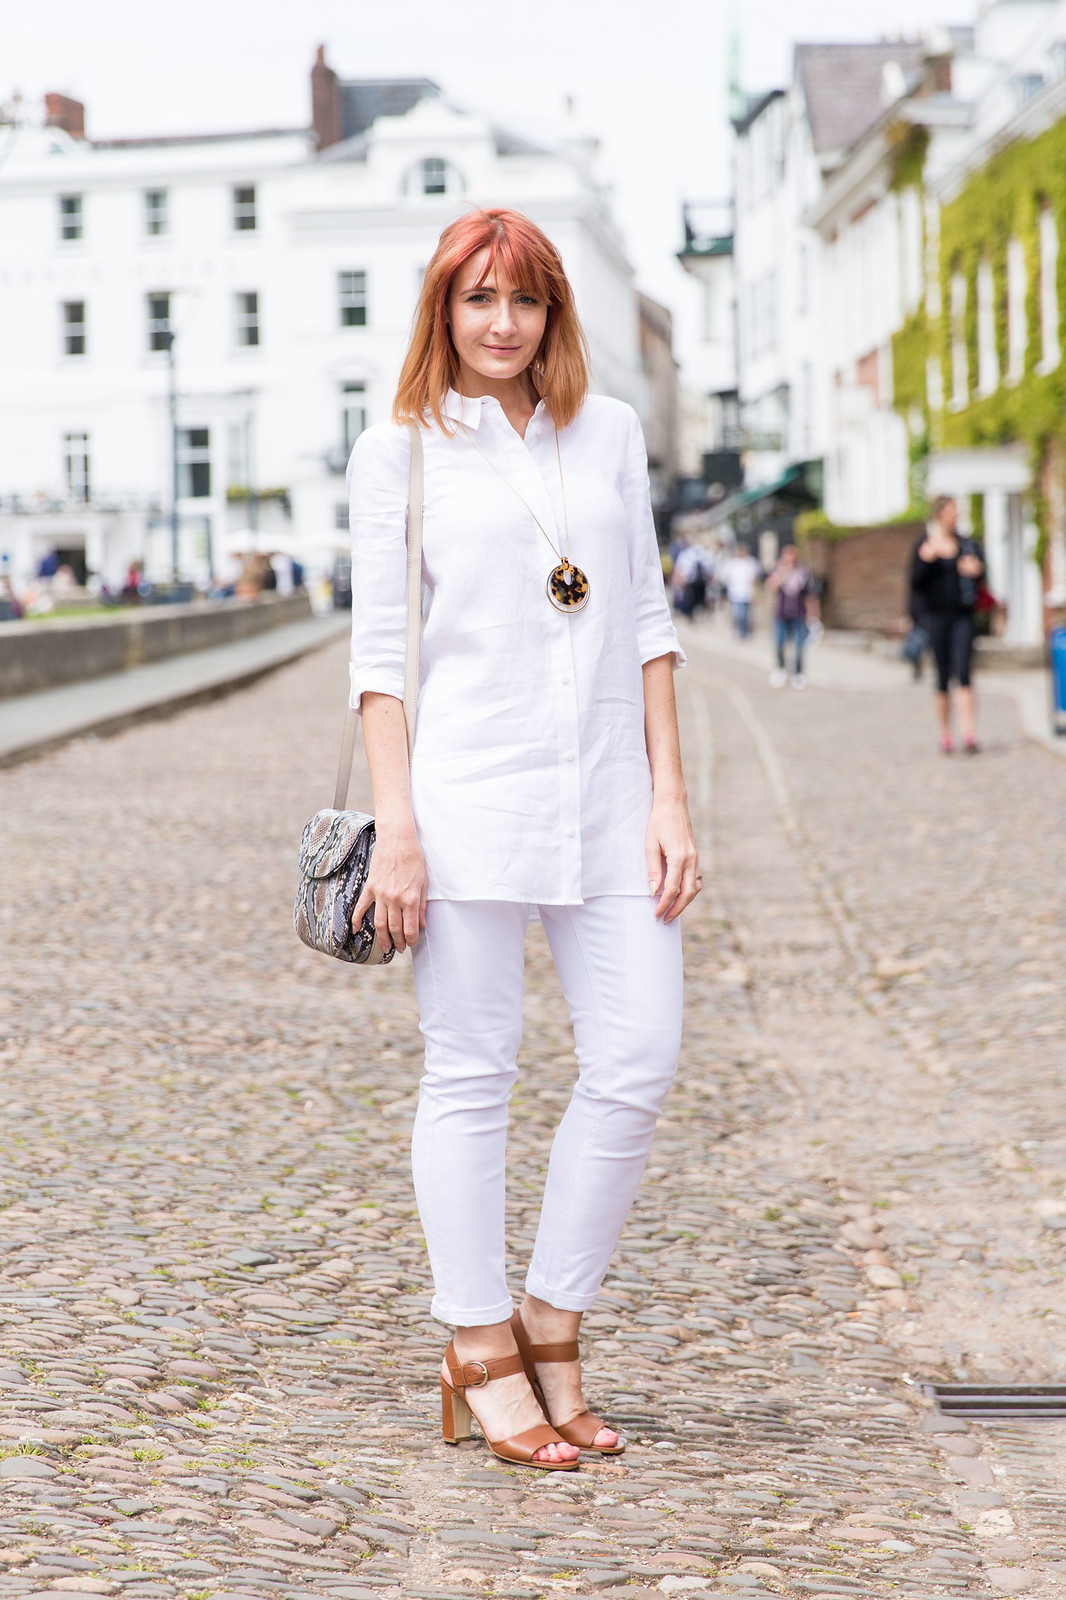 Hobbs SS16: White linen shirt, white jeans, snakeskin print satchel, tan sandals | Not Dressed As Lamb (photo: Kate Forster)